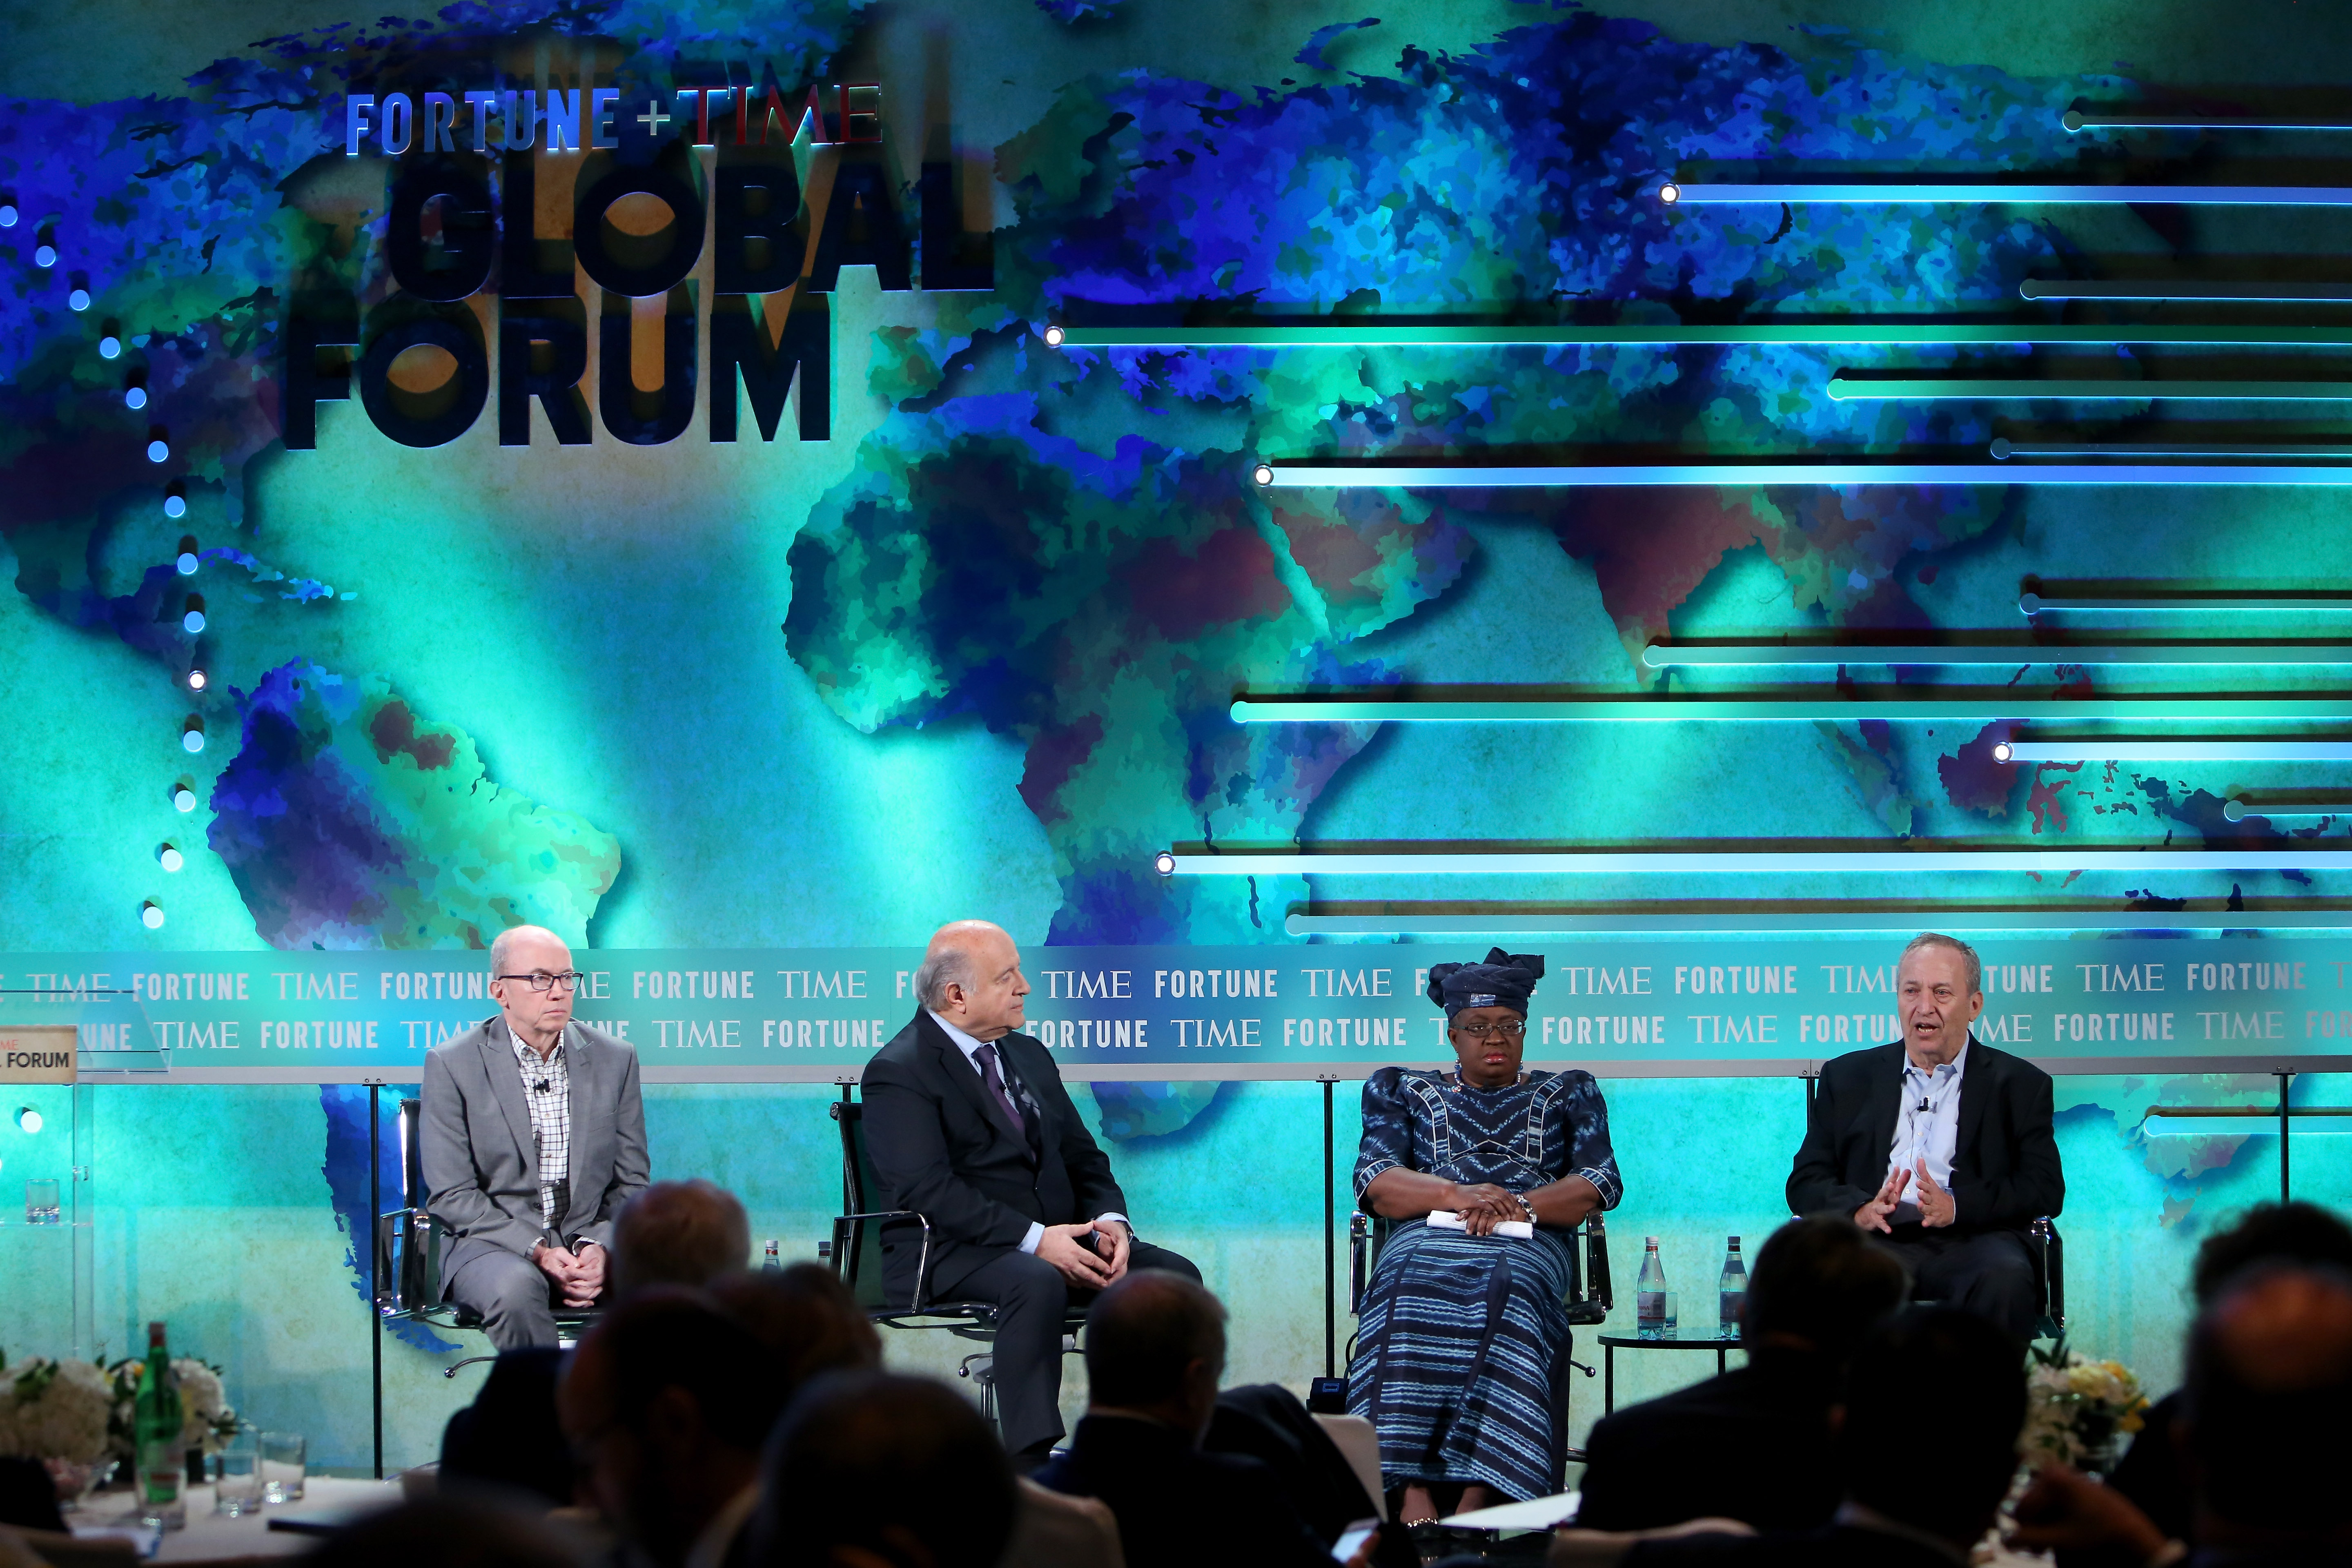 ROME, ITALY - DECEMBER 02:  (L-R) Alan Murray, Editor-in-Chief of Fortune and Chief Content Officer, Hernando de Soto, President of Institute for Liberty and Democracy, Ngozi Okonjo-Iweala, Chair, Gavi, the Global Alliance for Vaccines and Immunization, and Lawrence Summers, Harvard University President Emeritus, speak at the Fortune + Time Global Forum 2016 on December 2, 2016 in Rome, Italy.  (Photo by Elisabetta Villa/Getty Images for TIME)